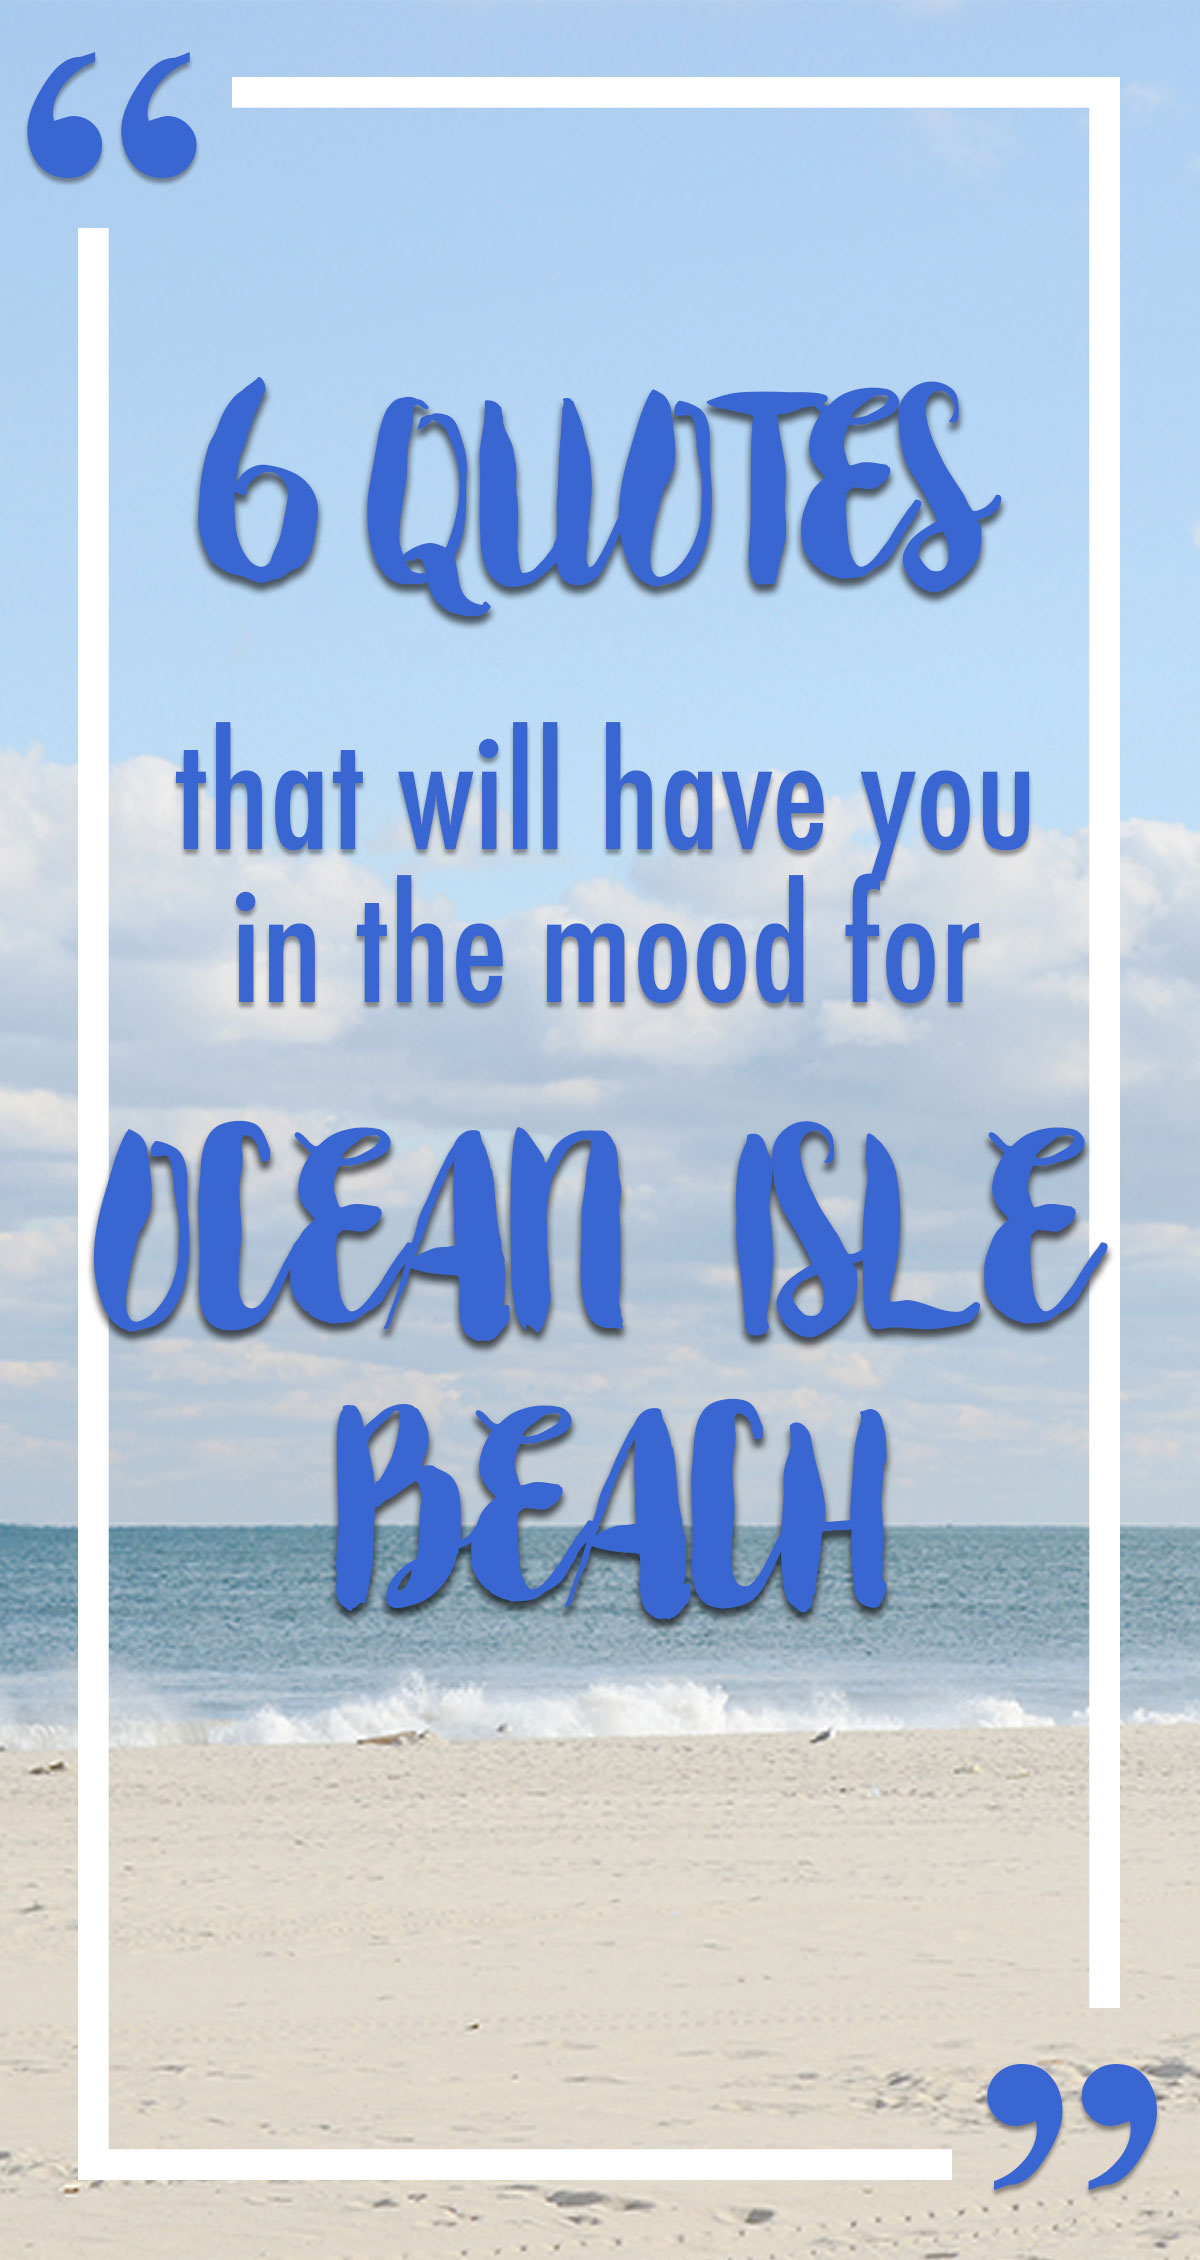 6 Quotes That Will Have You in the Mood for Ocean Isle Beach Pin